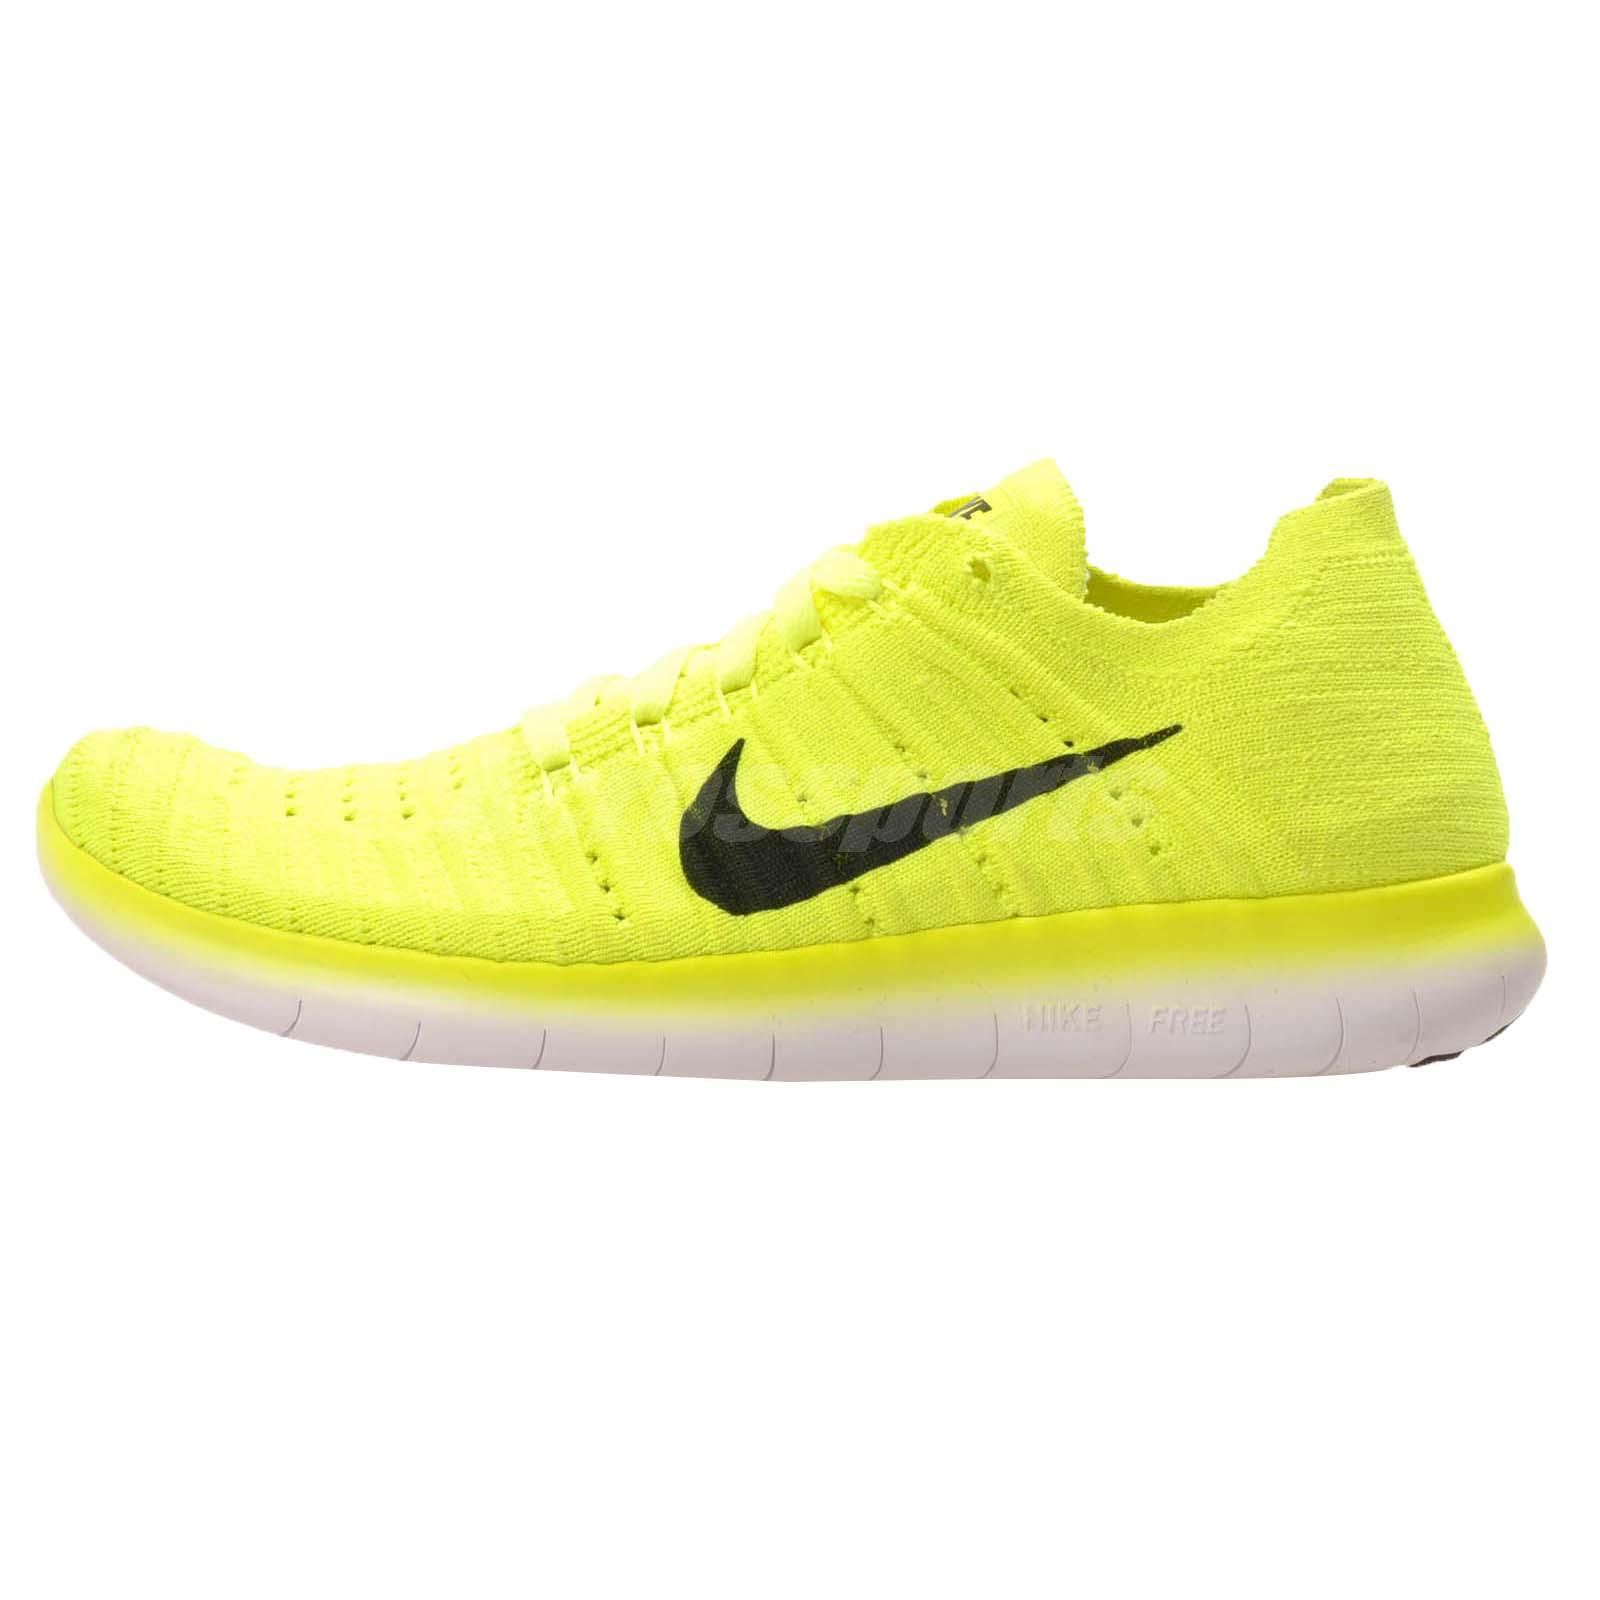 7802dc9c83291 ... Nike Free RN Flyknit (GS) Kids Youth Running Shoes NWOB Volt 834362-700  . ...